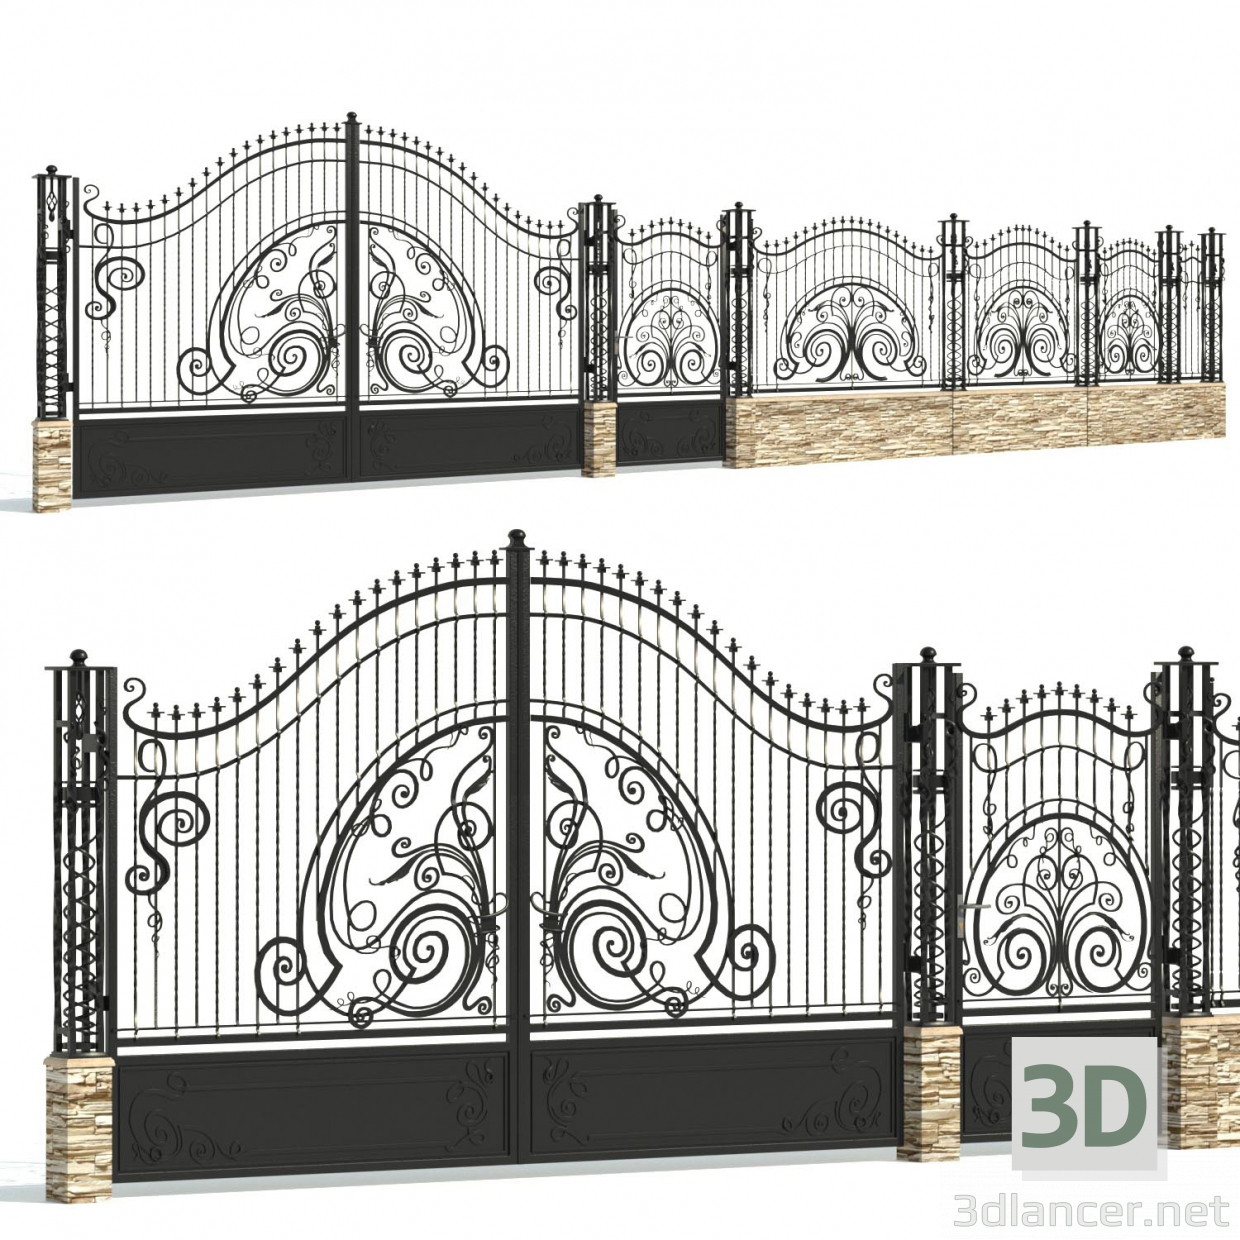 3d Forged fence PREVIEWNUM#